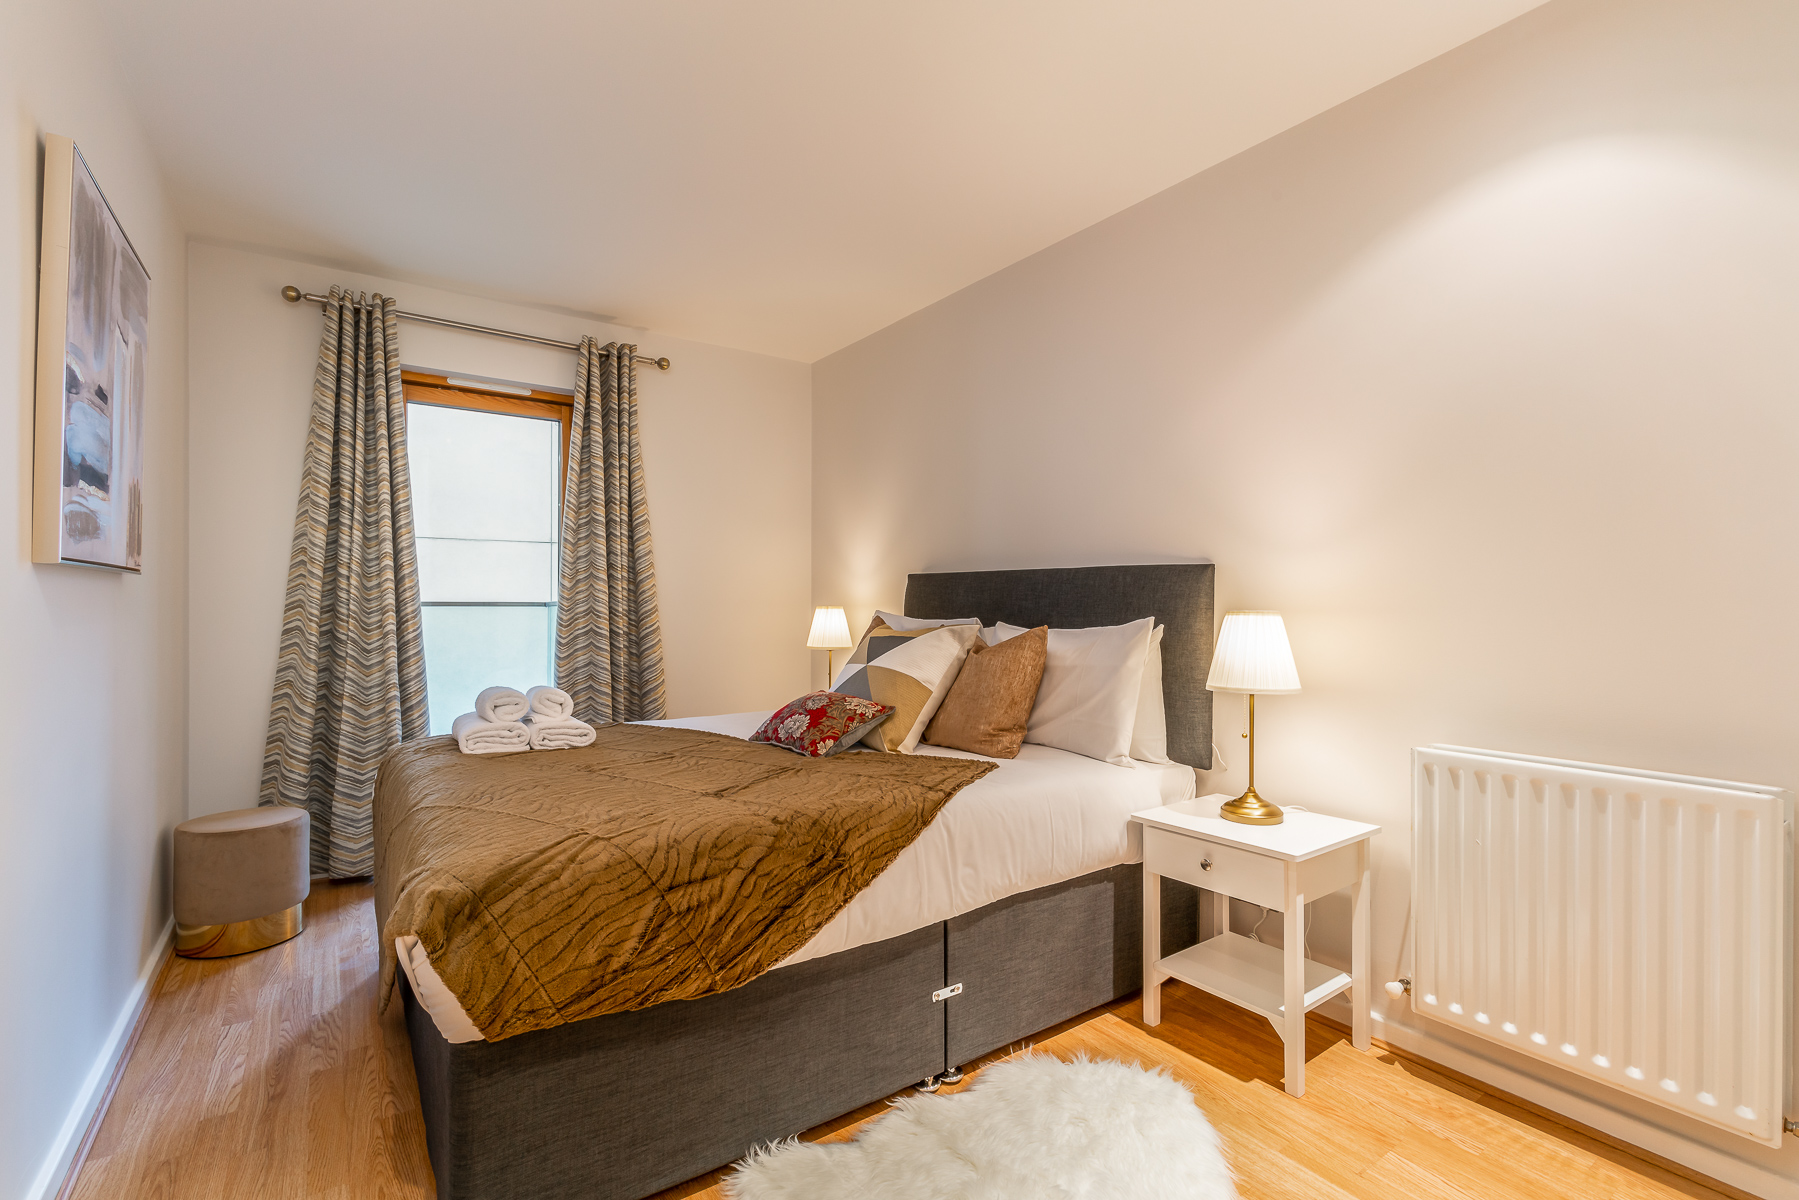 Bed at Lazer Lane Apartment, Centre, Dublin - Citybase Apartments